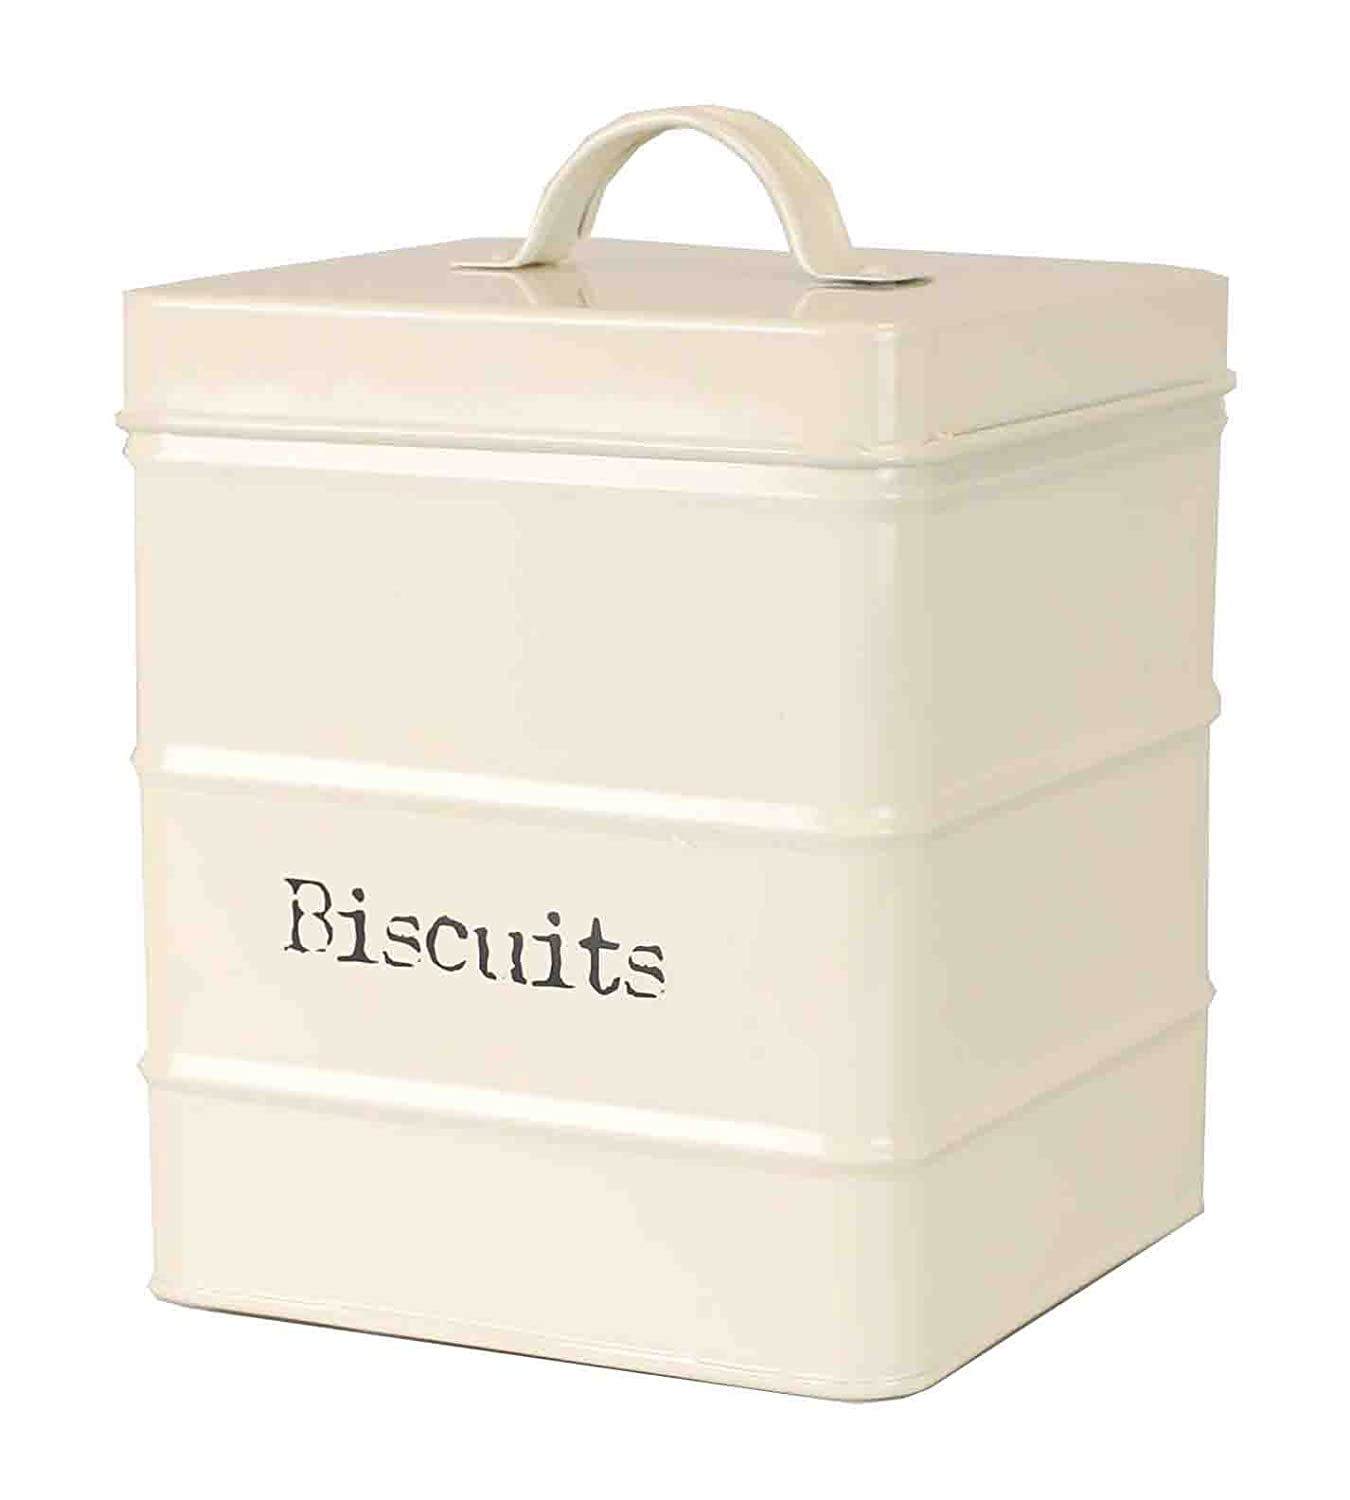 Home Basics CS47393 Biscuits, Ivory Tin Canister, One Size, Copper